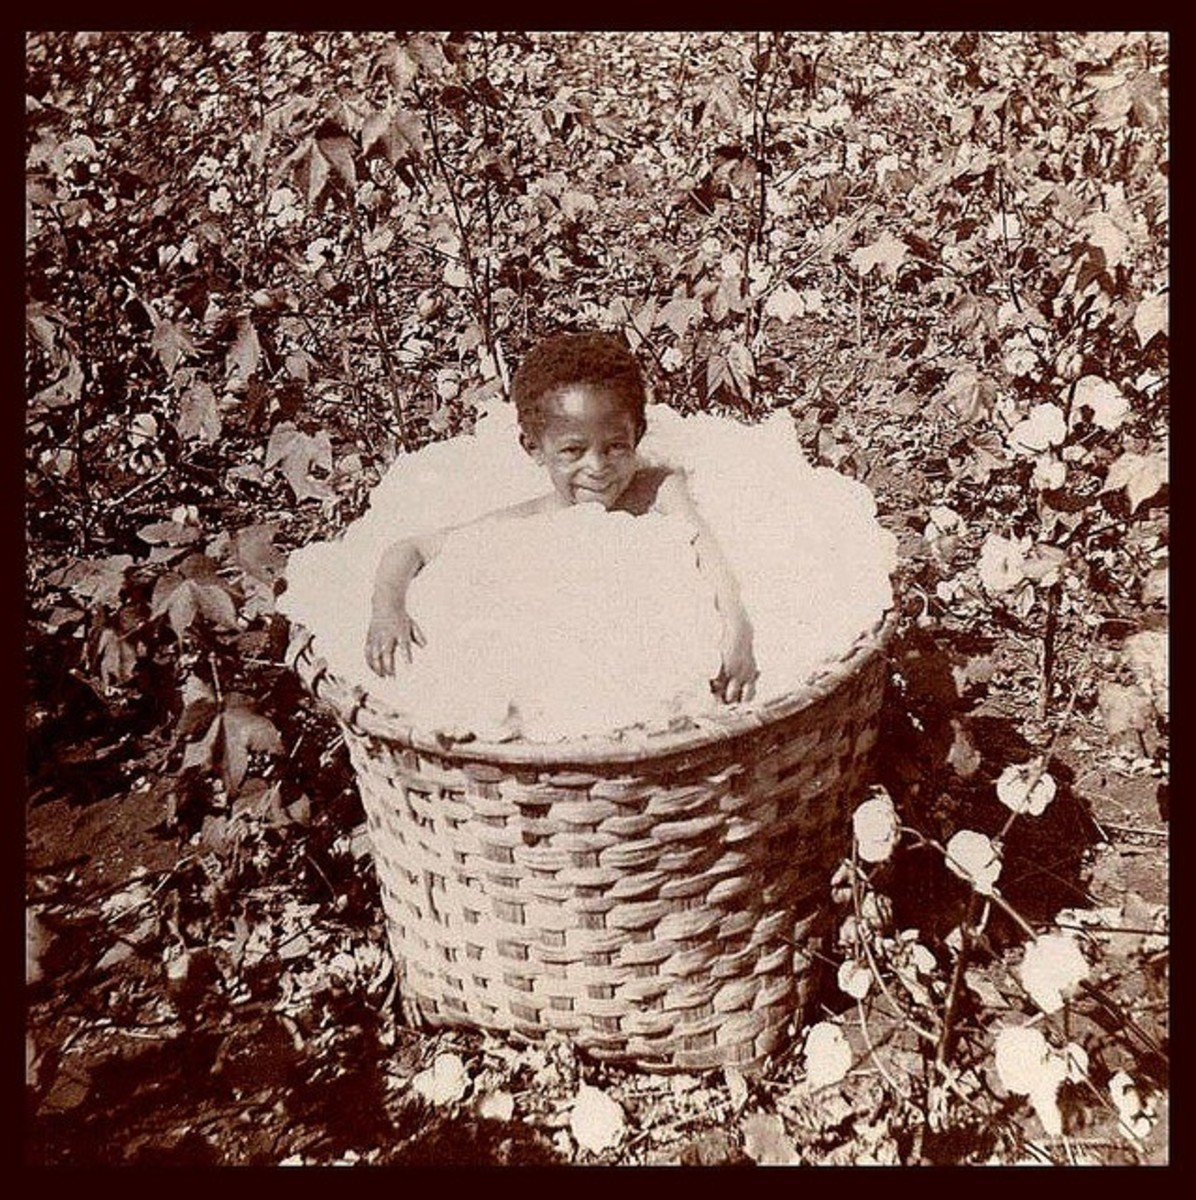 Little girl plays in basket of cotton.